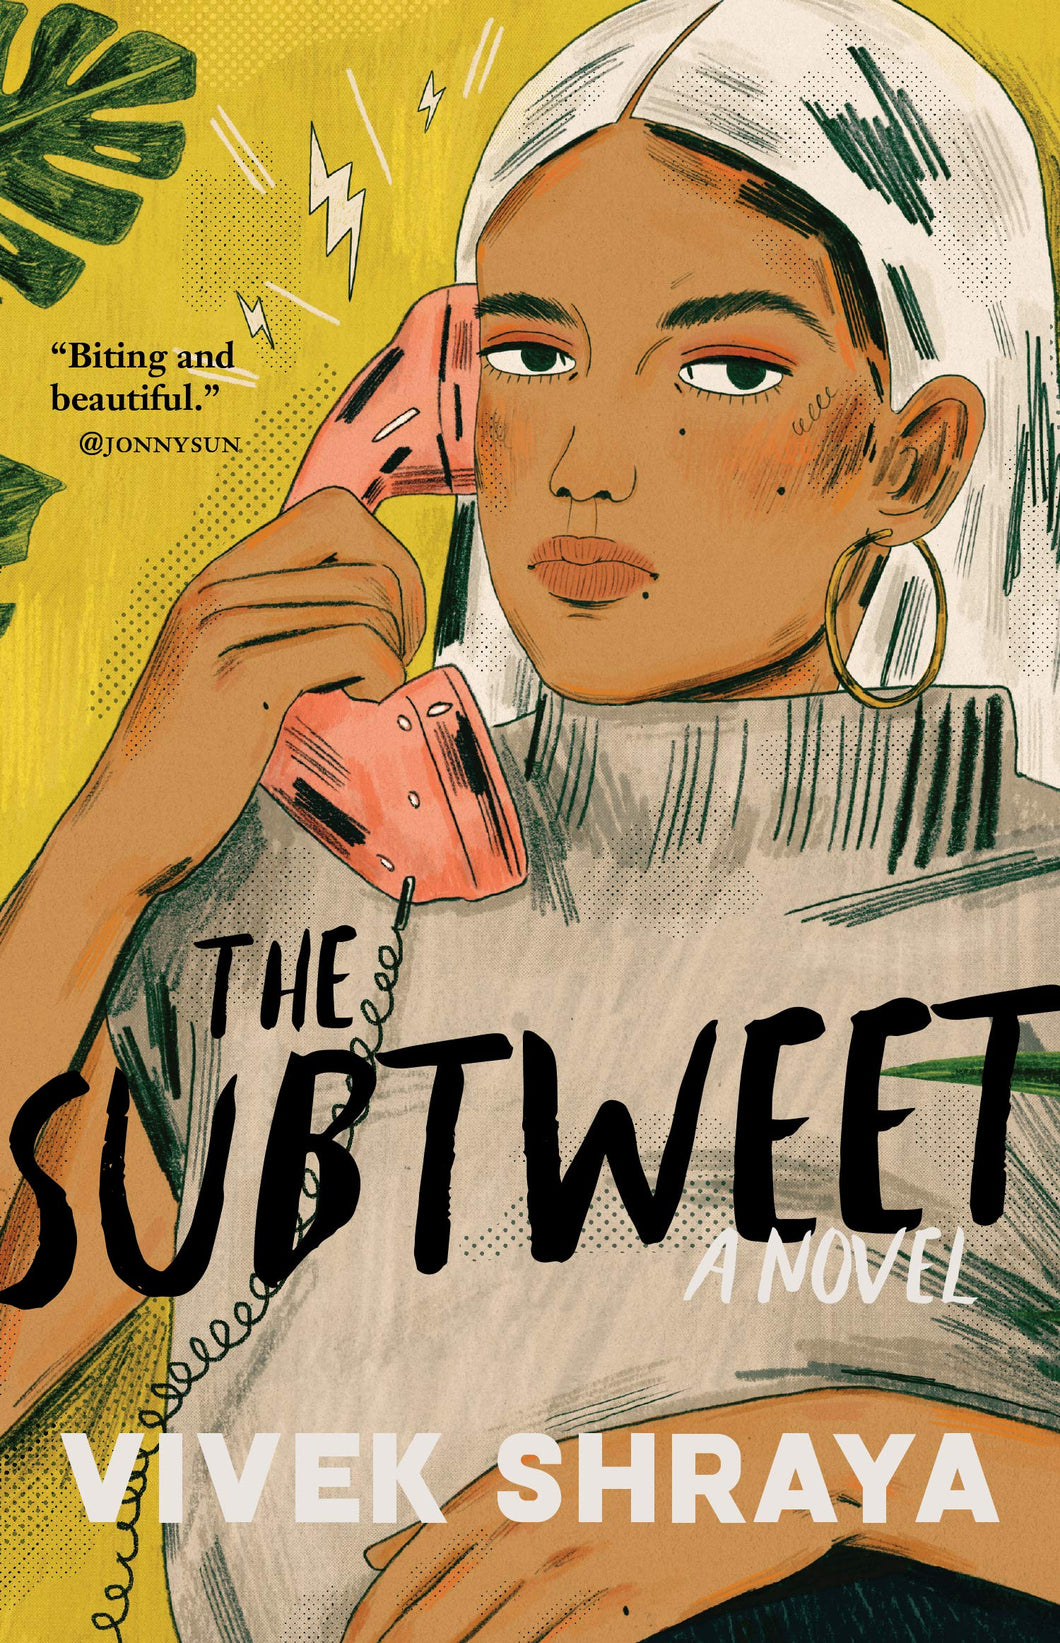 The Subtweet: A Novel by Vivek Shraya